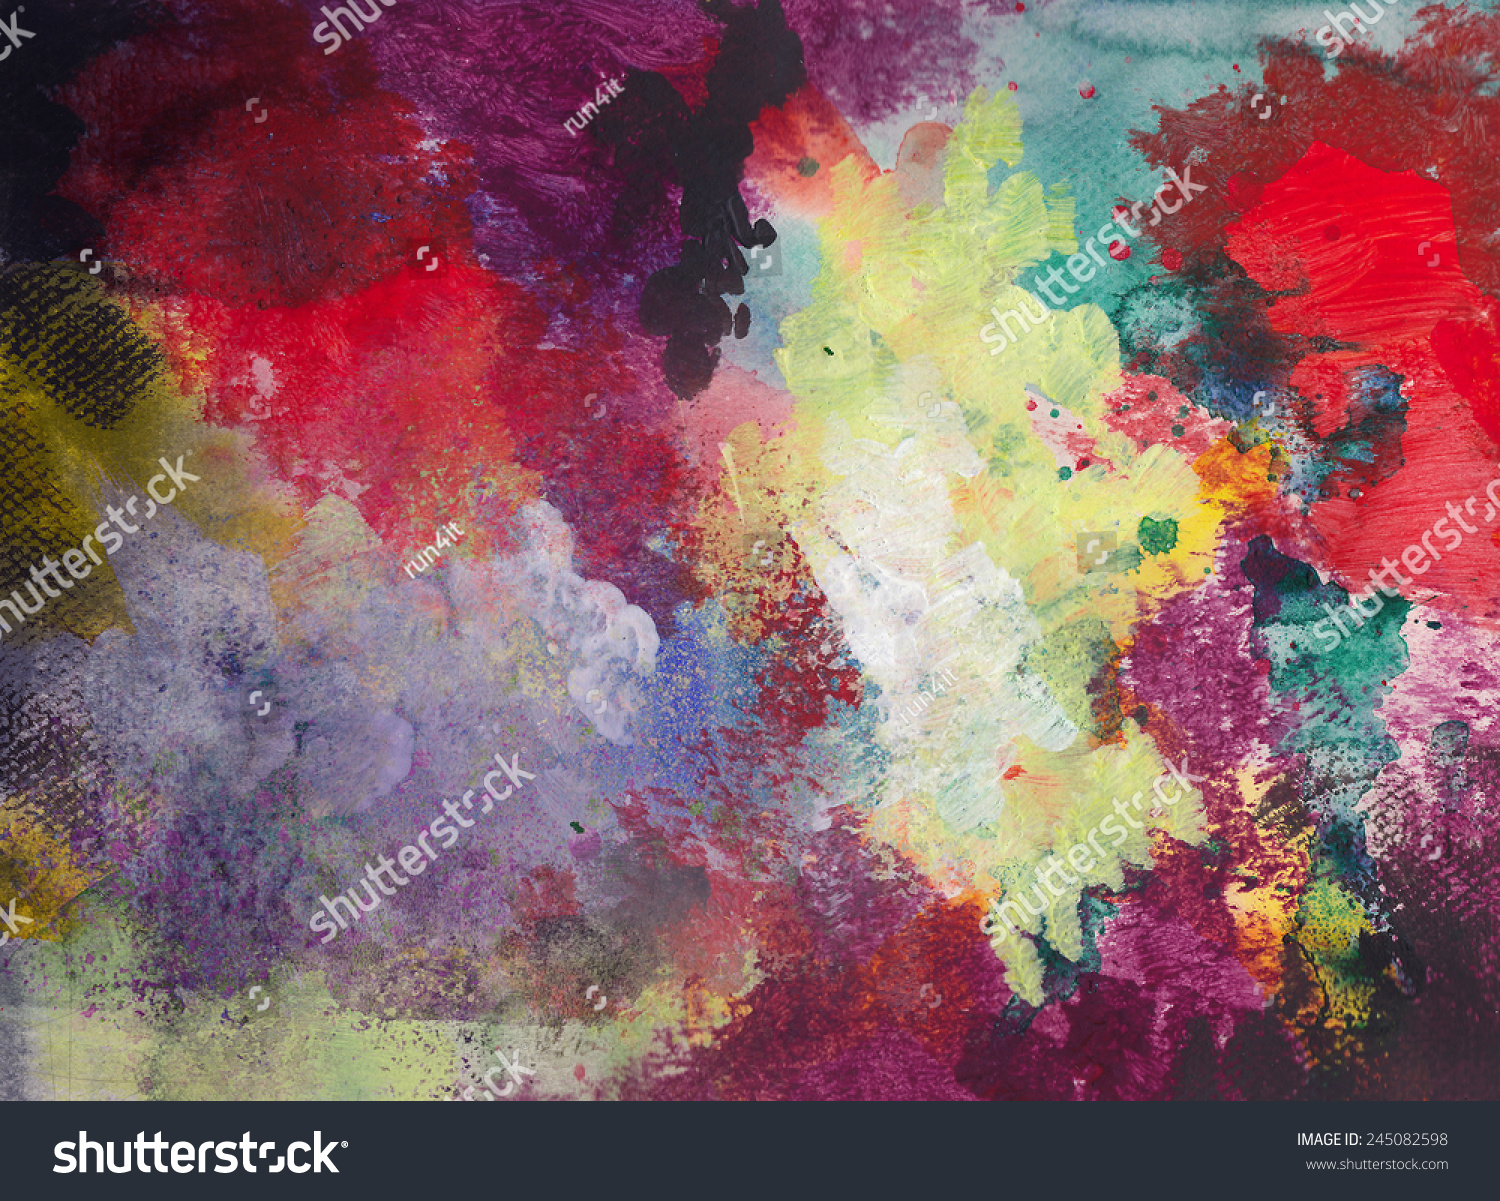 Abstract ink acrylic painting on grunge stock illustration for Acrylic painting on black background